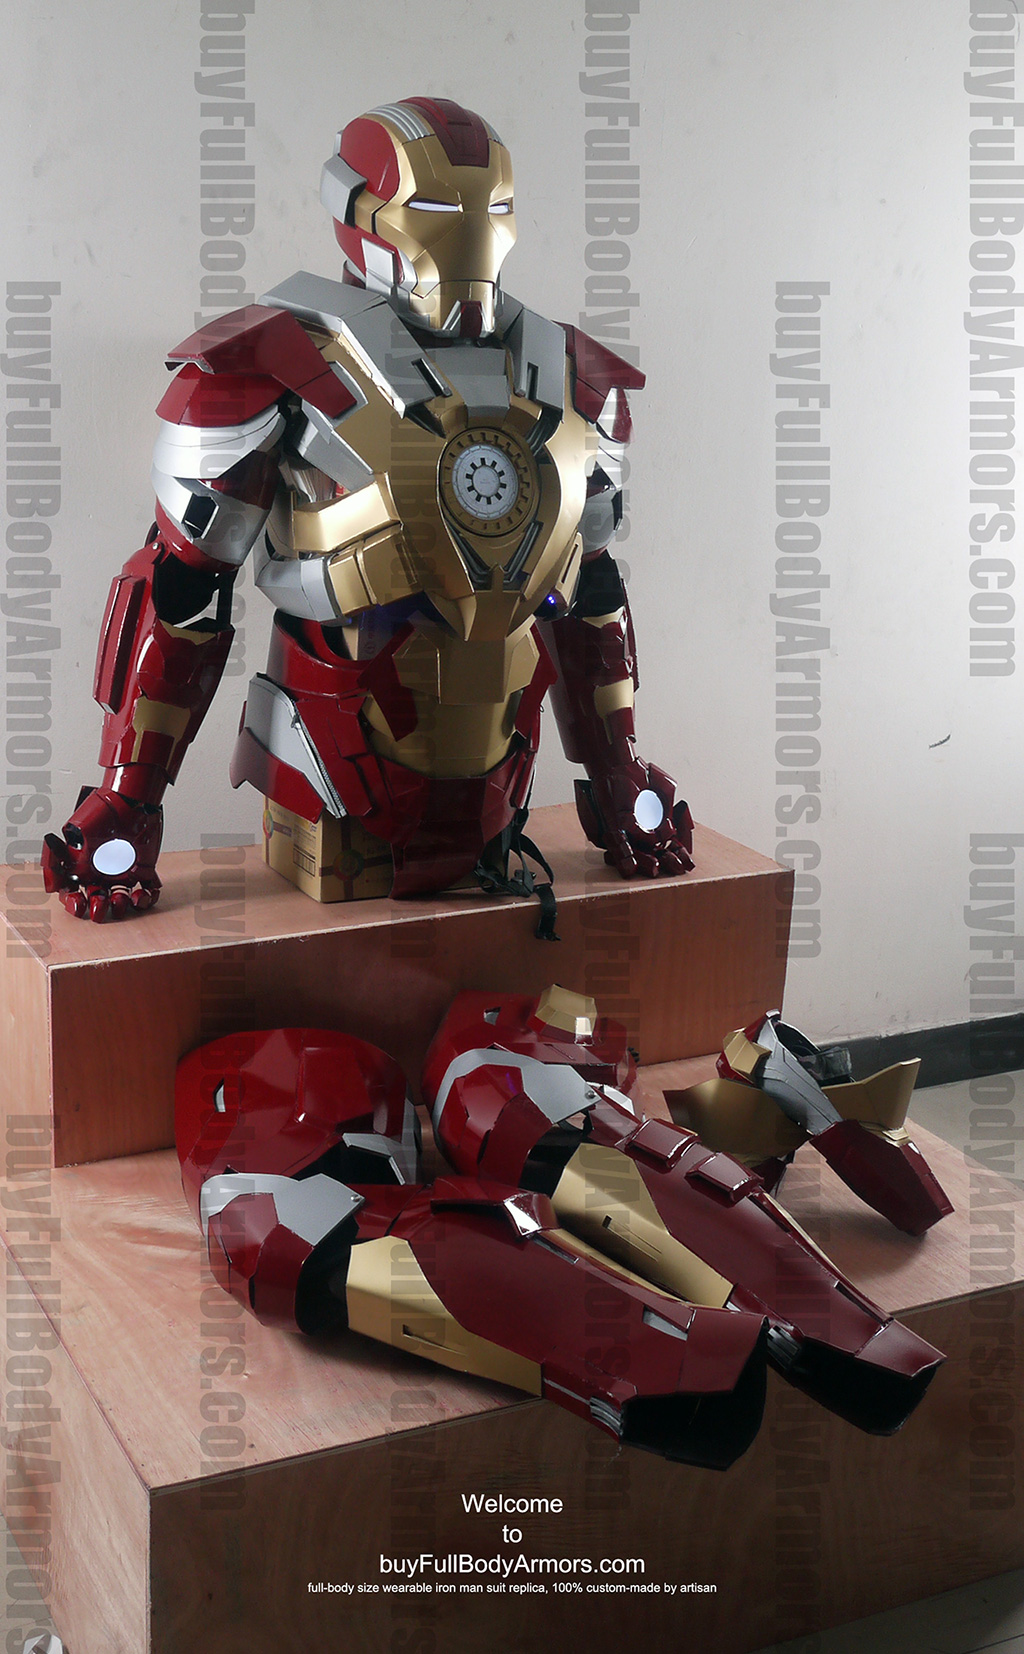 Wearable Iron Man suit Mark 17 armor costume